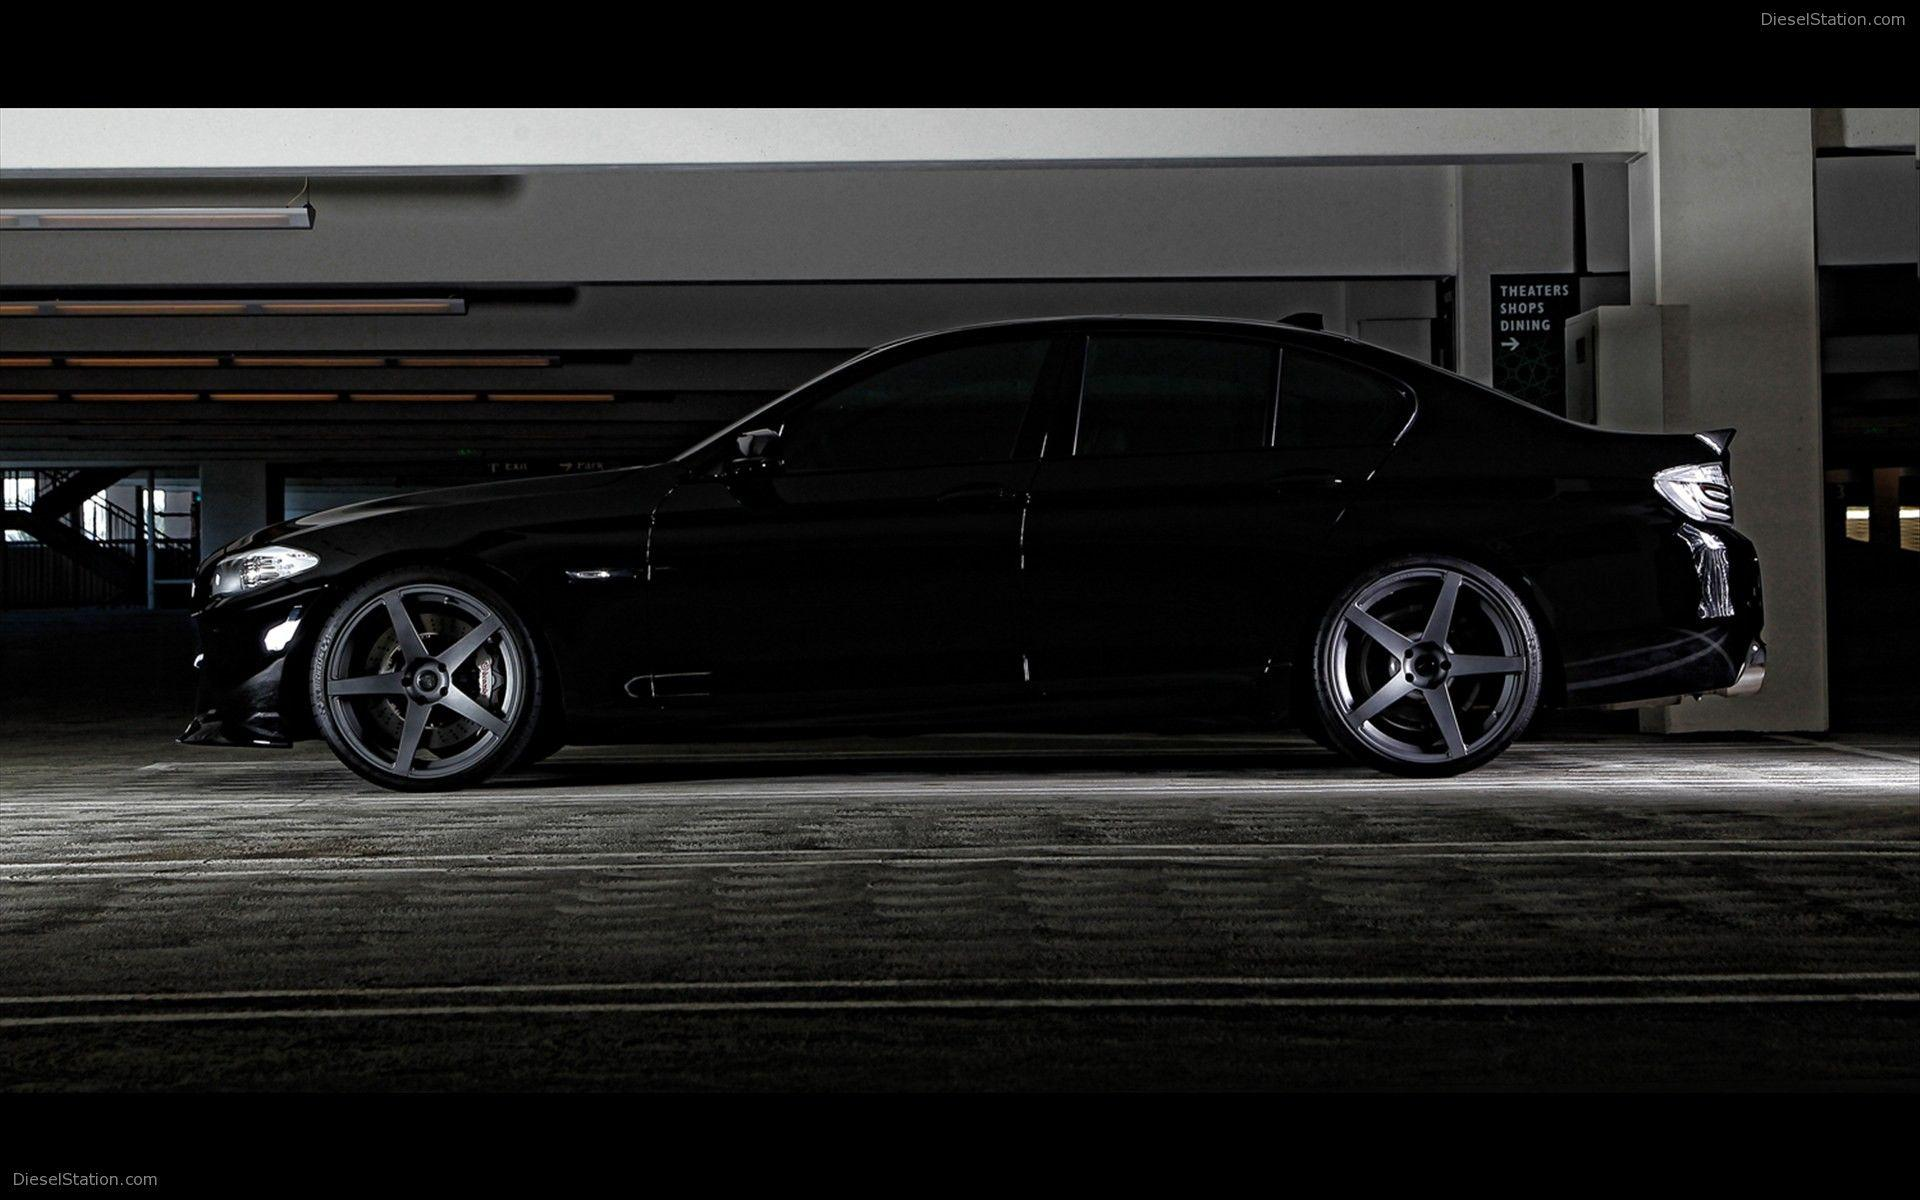 Vorsteiner BMW F10 5 Series 2012 Widescreen Exotic Car Wallpapers ...